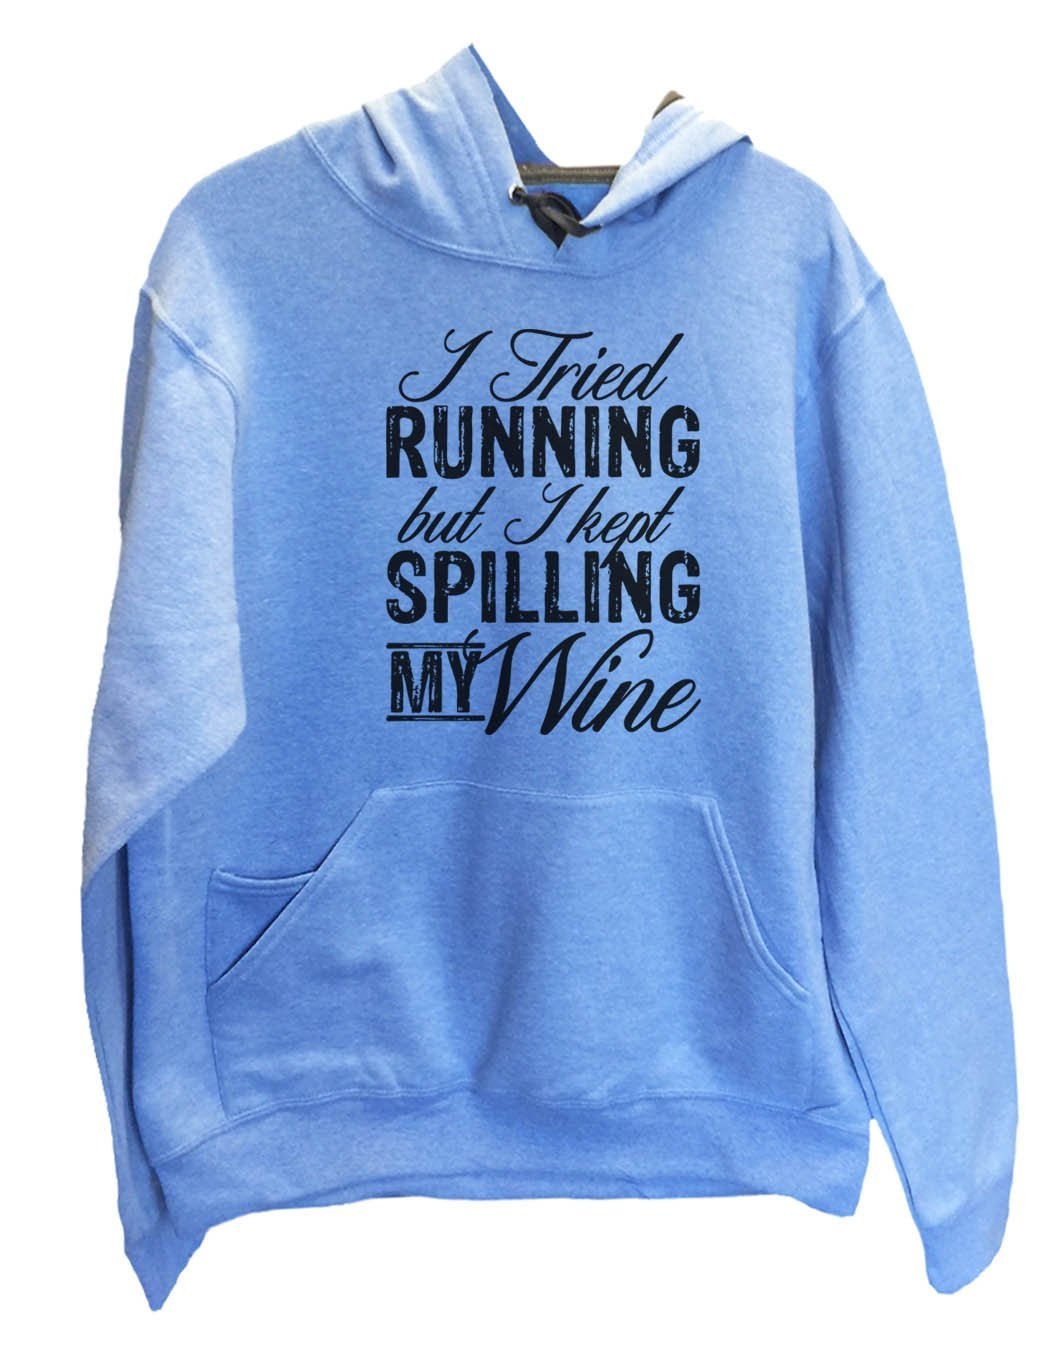 UNISEX HOODIE - I Tried Running But I Kept Spilling My Wine - FUNNY MENS AND WOMENS HOODED SWEATSHIRTS - 2160 Funny Shirt Small / North Carolina Blue